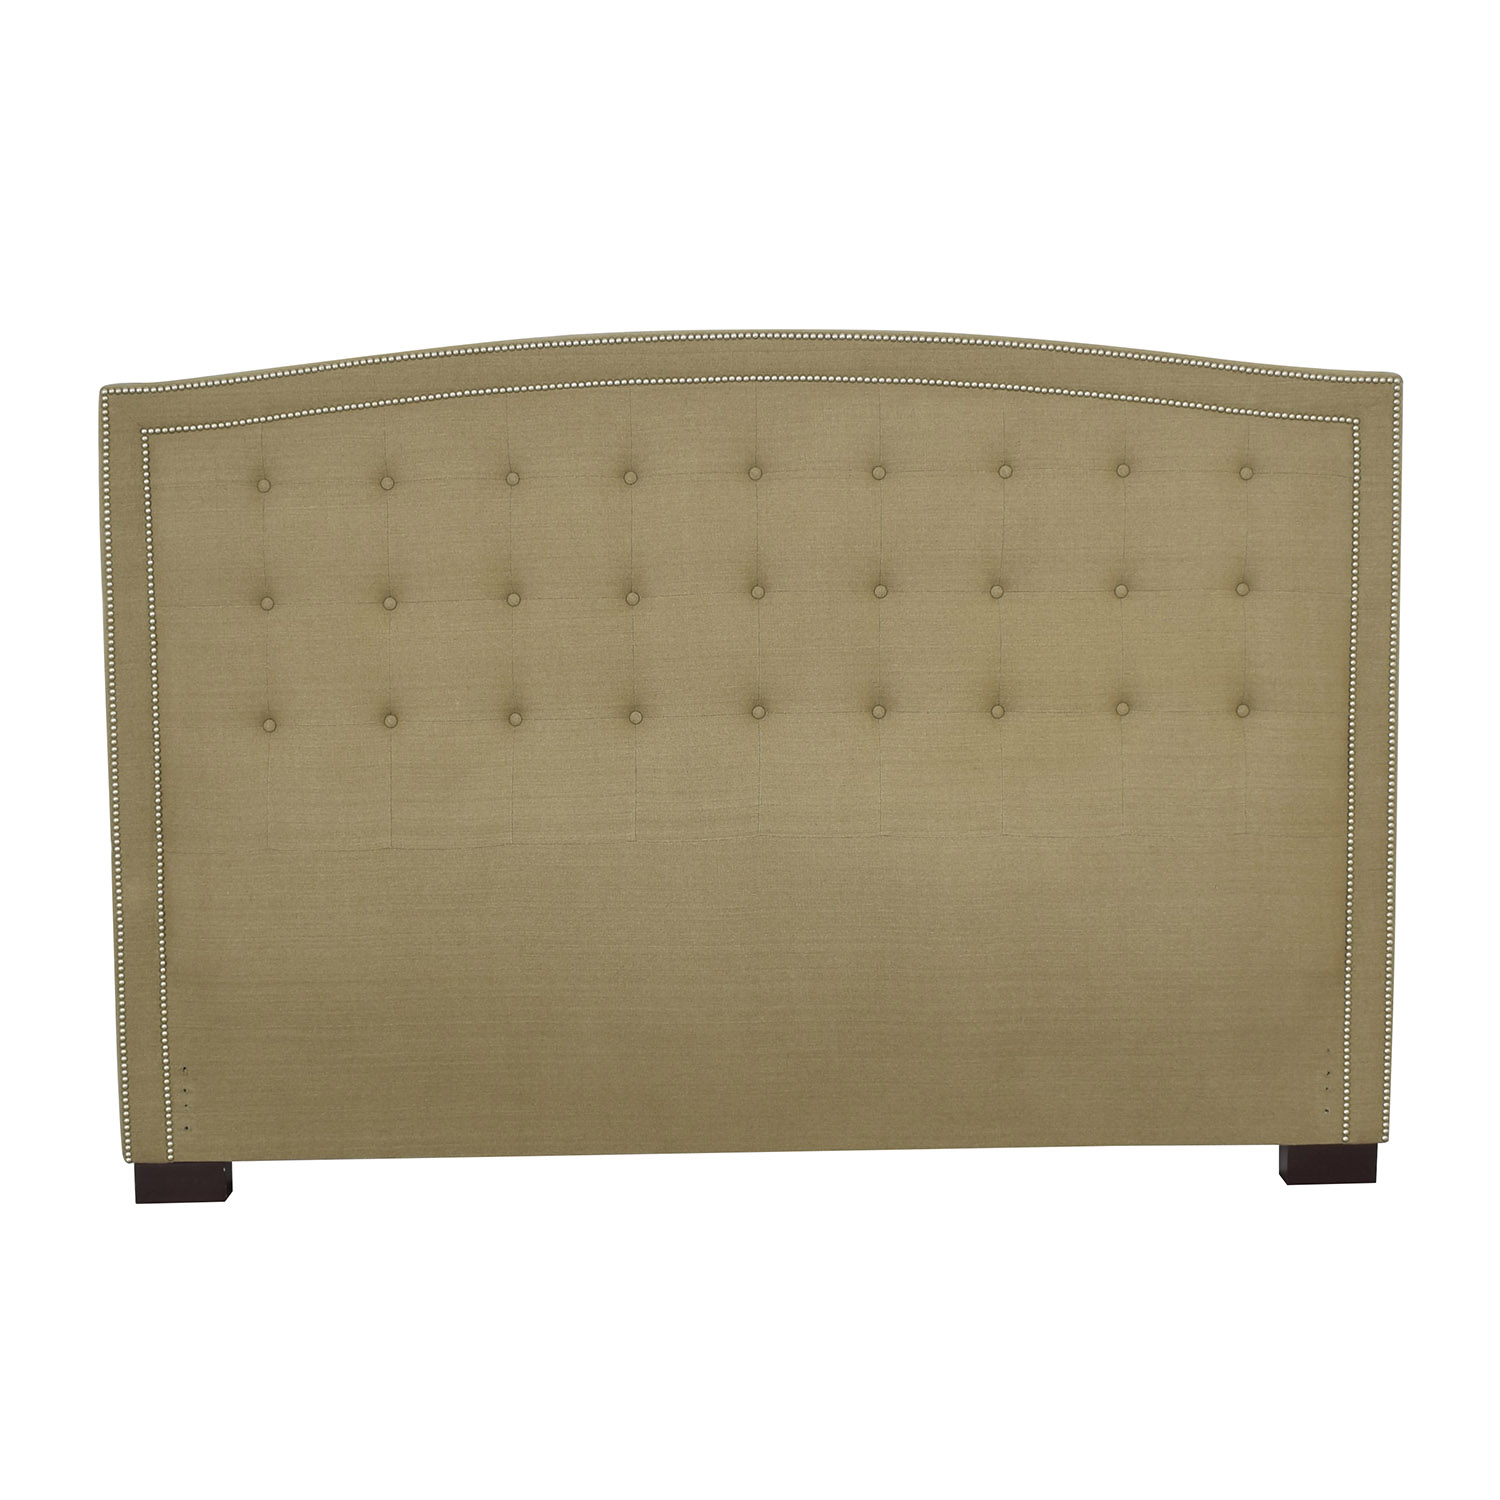 Ethan Allen Ethan Allen Studded King Headboard nj